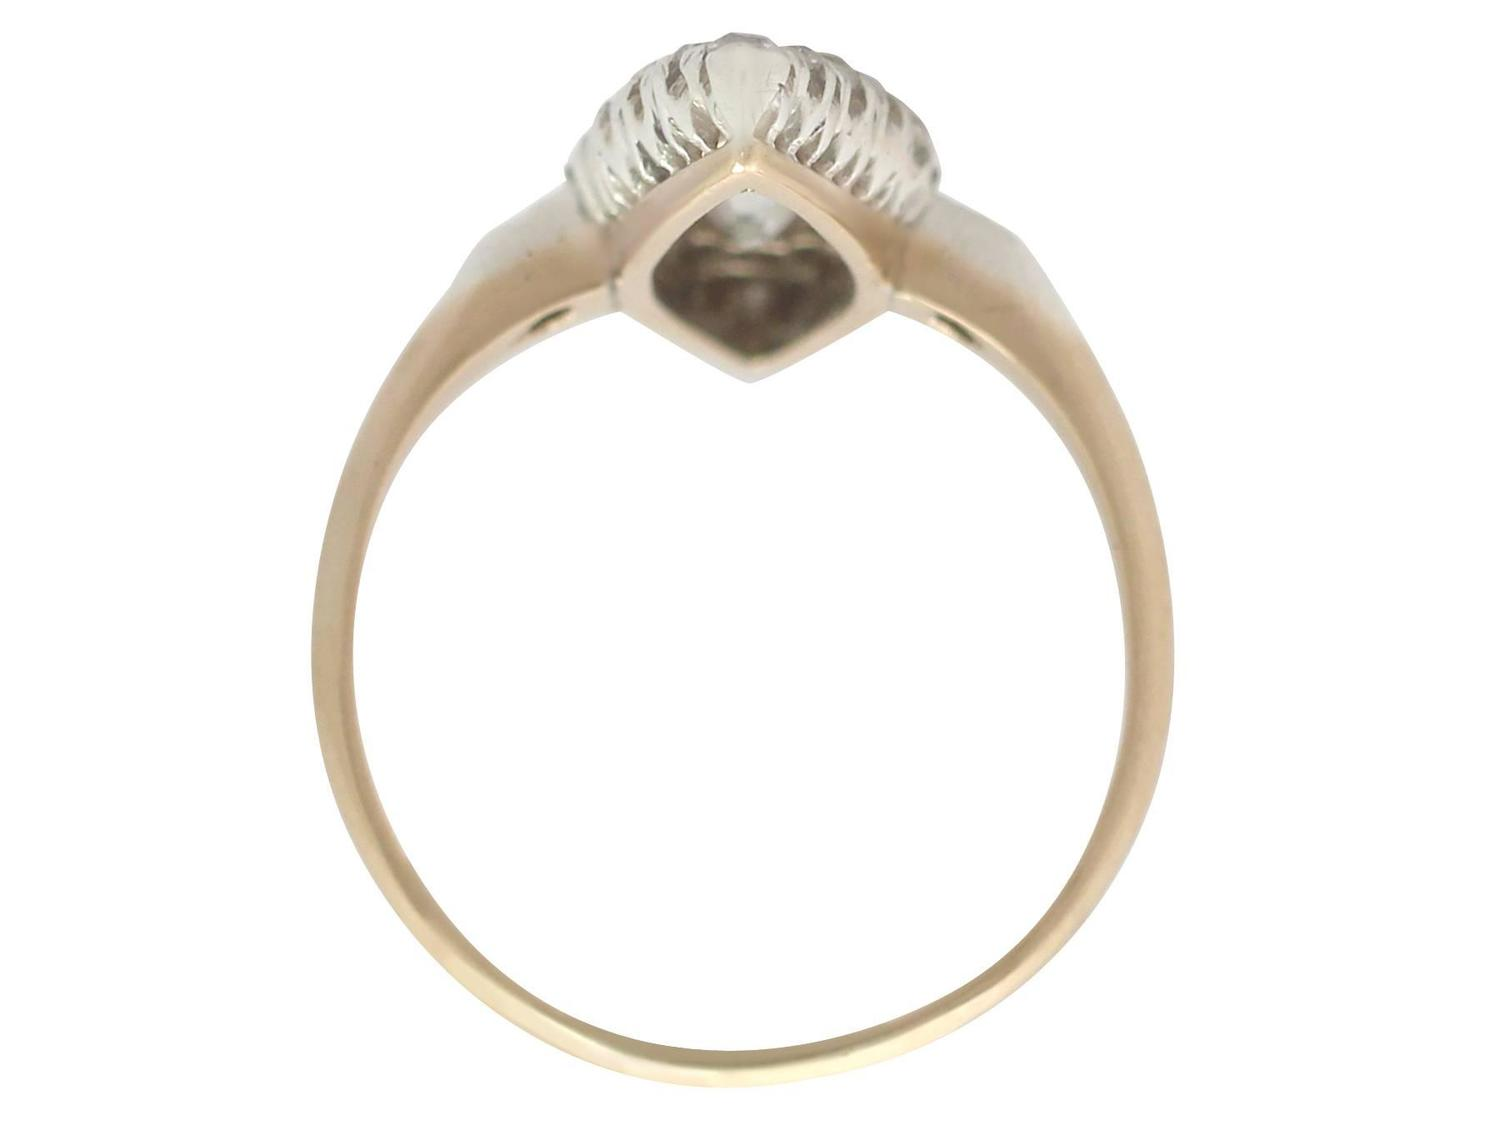 1900s 1 57 carat and 14k yellow gold marquise ring